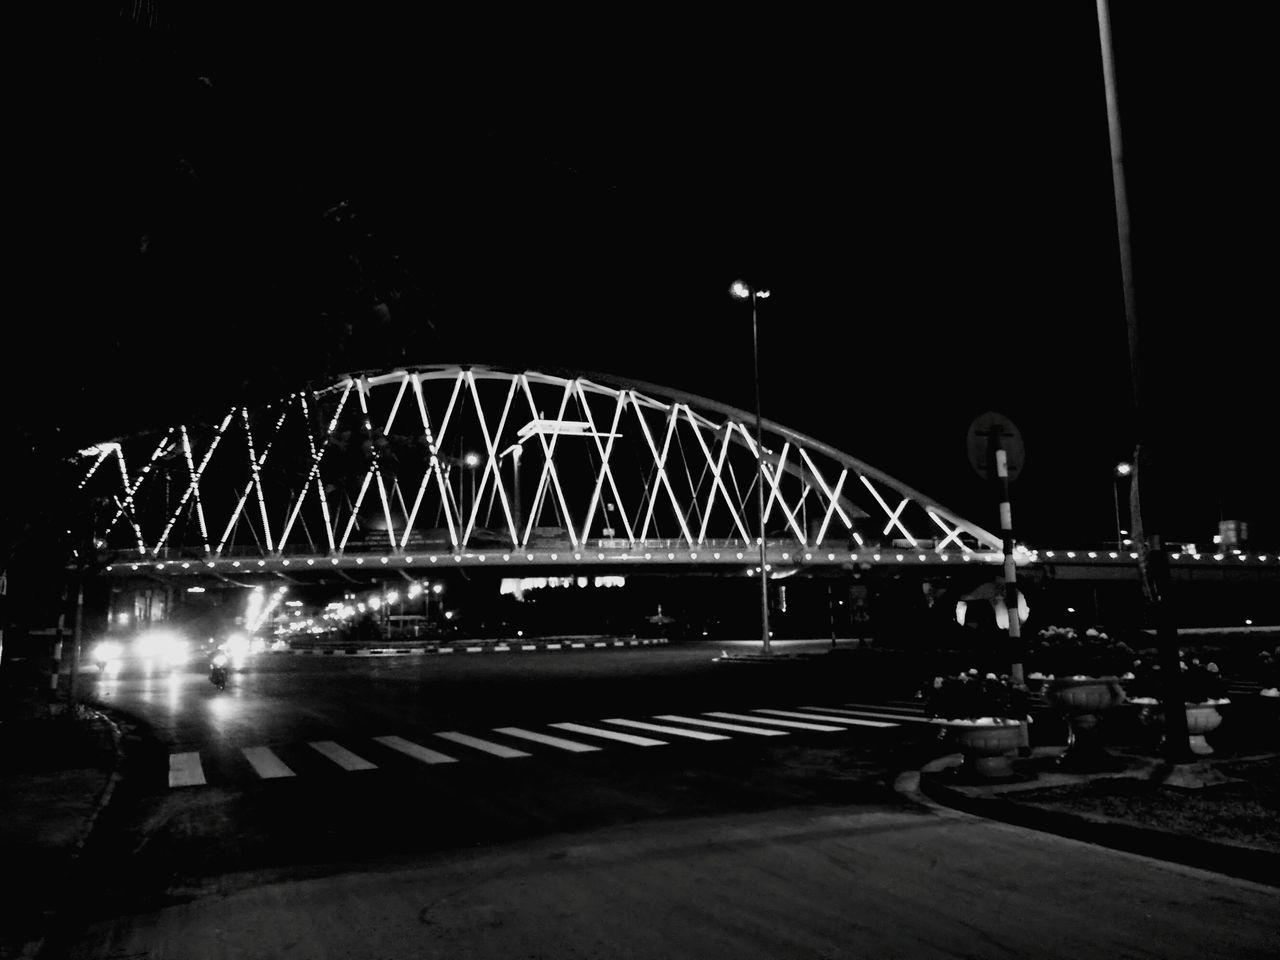 night, bridge - man made structure, illuminated, connection, architecture, built structure, outdoors, no people, transportation, travel destinations, city, water, sky, girder